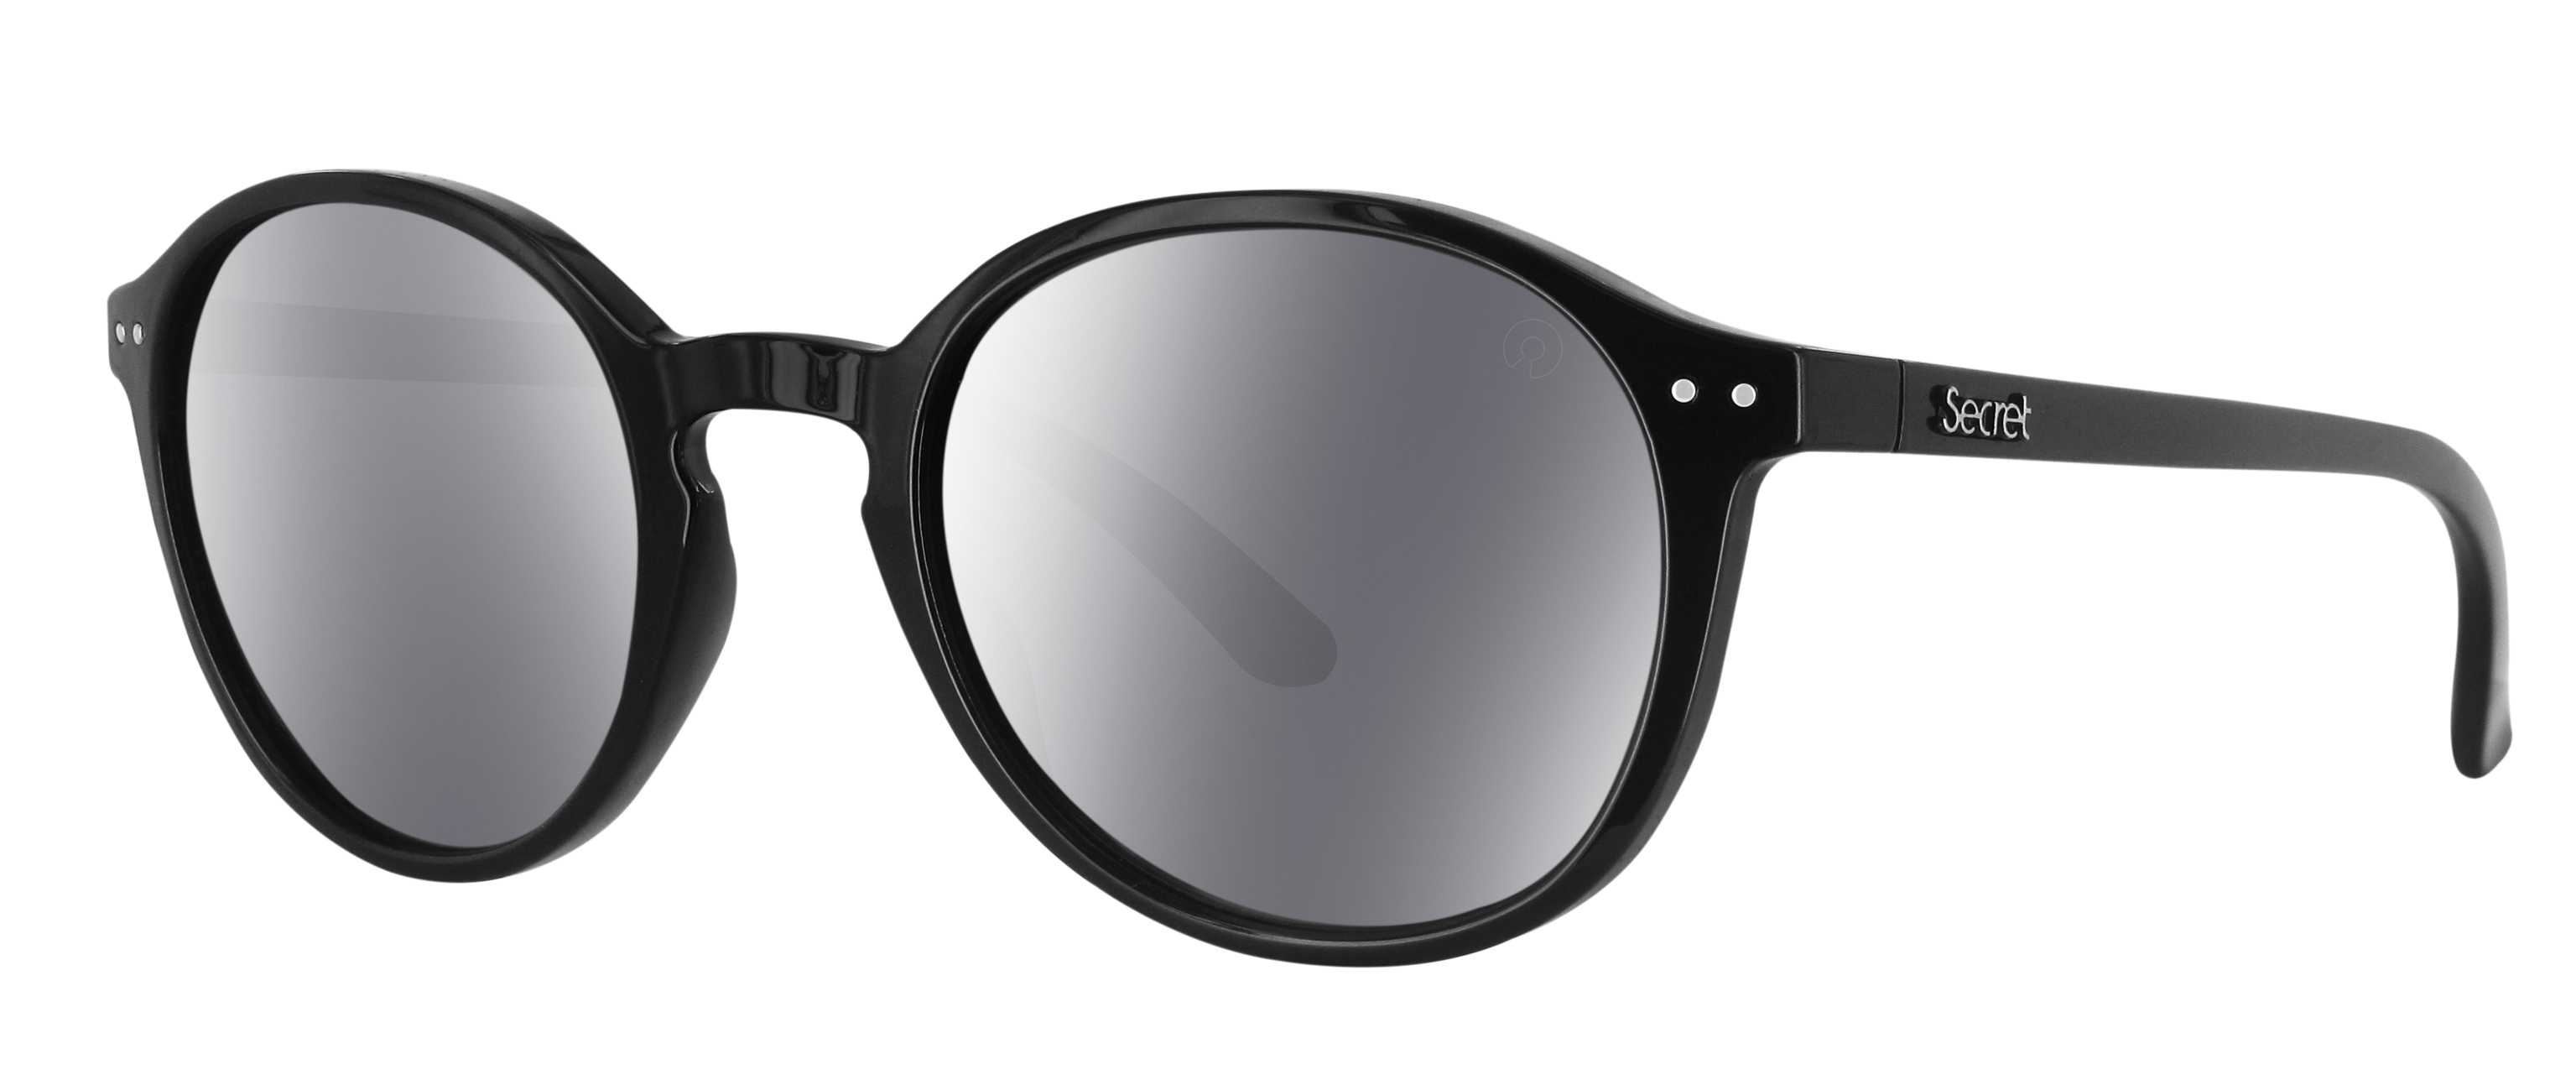 023f891e2 Oculos De Sol Hb Rocker « One More Soul